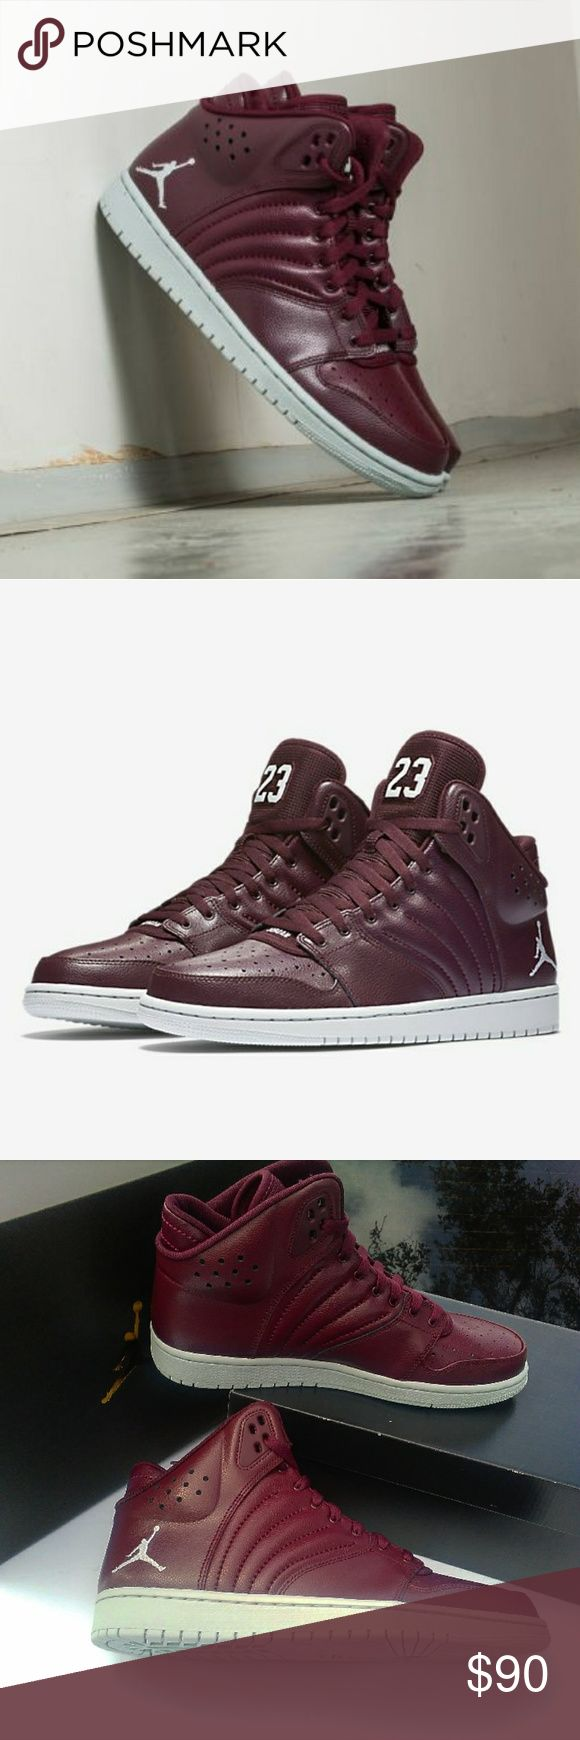 Men's Jordan 1 Flight 4 (Size 10.5) •Brand new in box •100% authentic •Excellent condition •Size 10.5 men •Night Maroon color way •Ships doubled boxed •Secured packaging •Same day/next day shipping Nike Shoes Sneakers